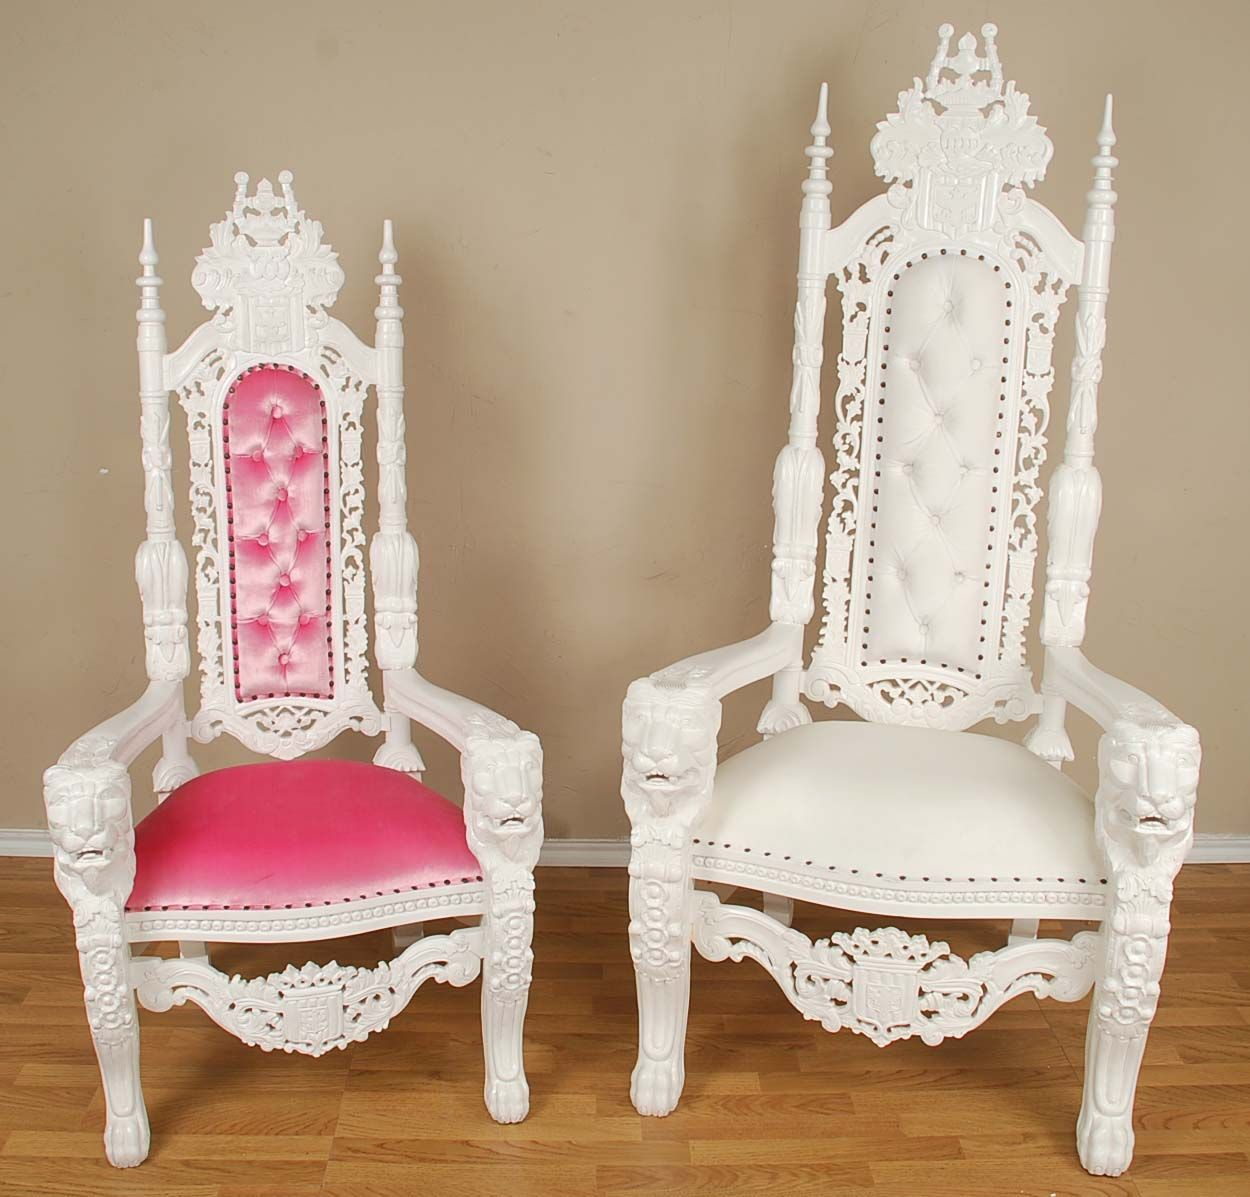 795 for the pink velvet queen lion throne chair the set